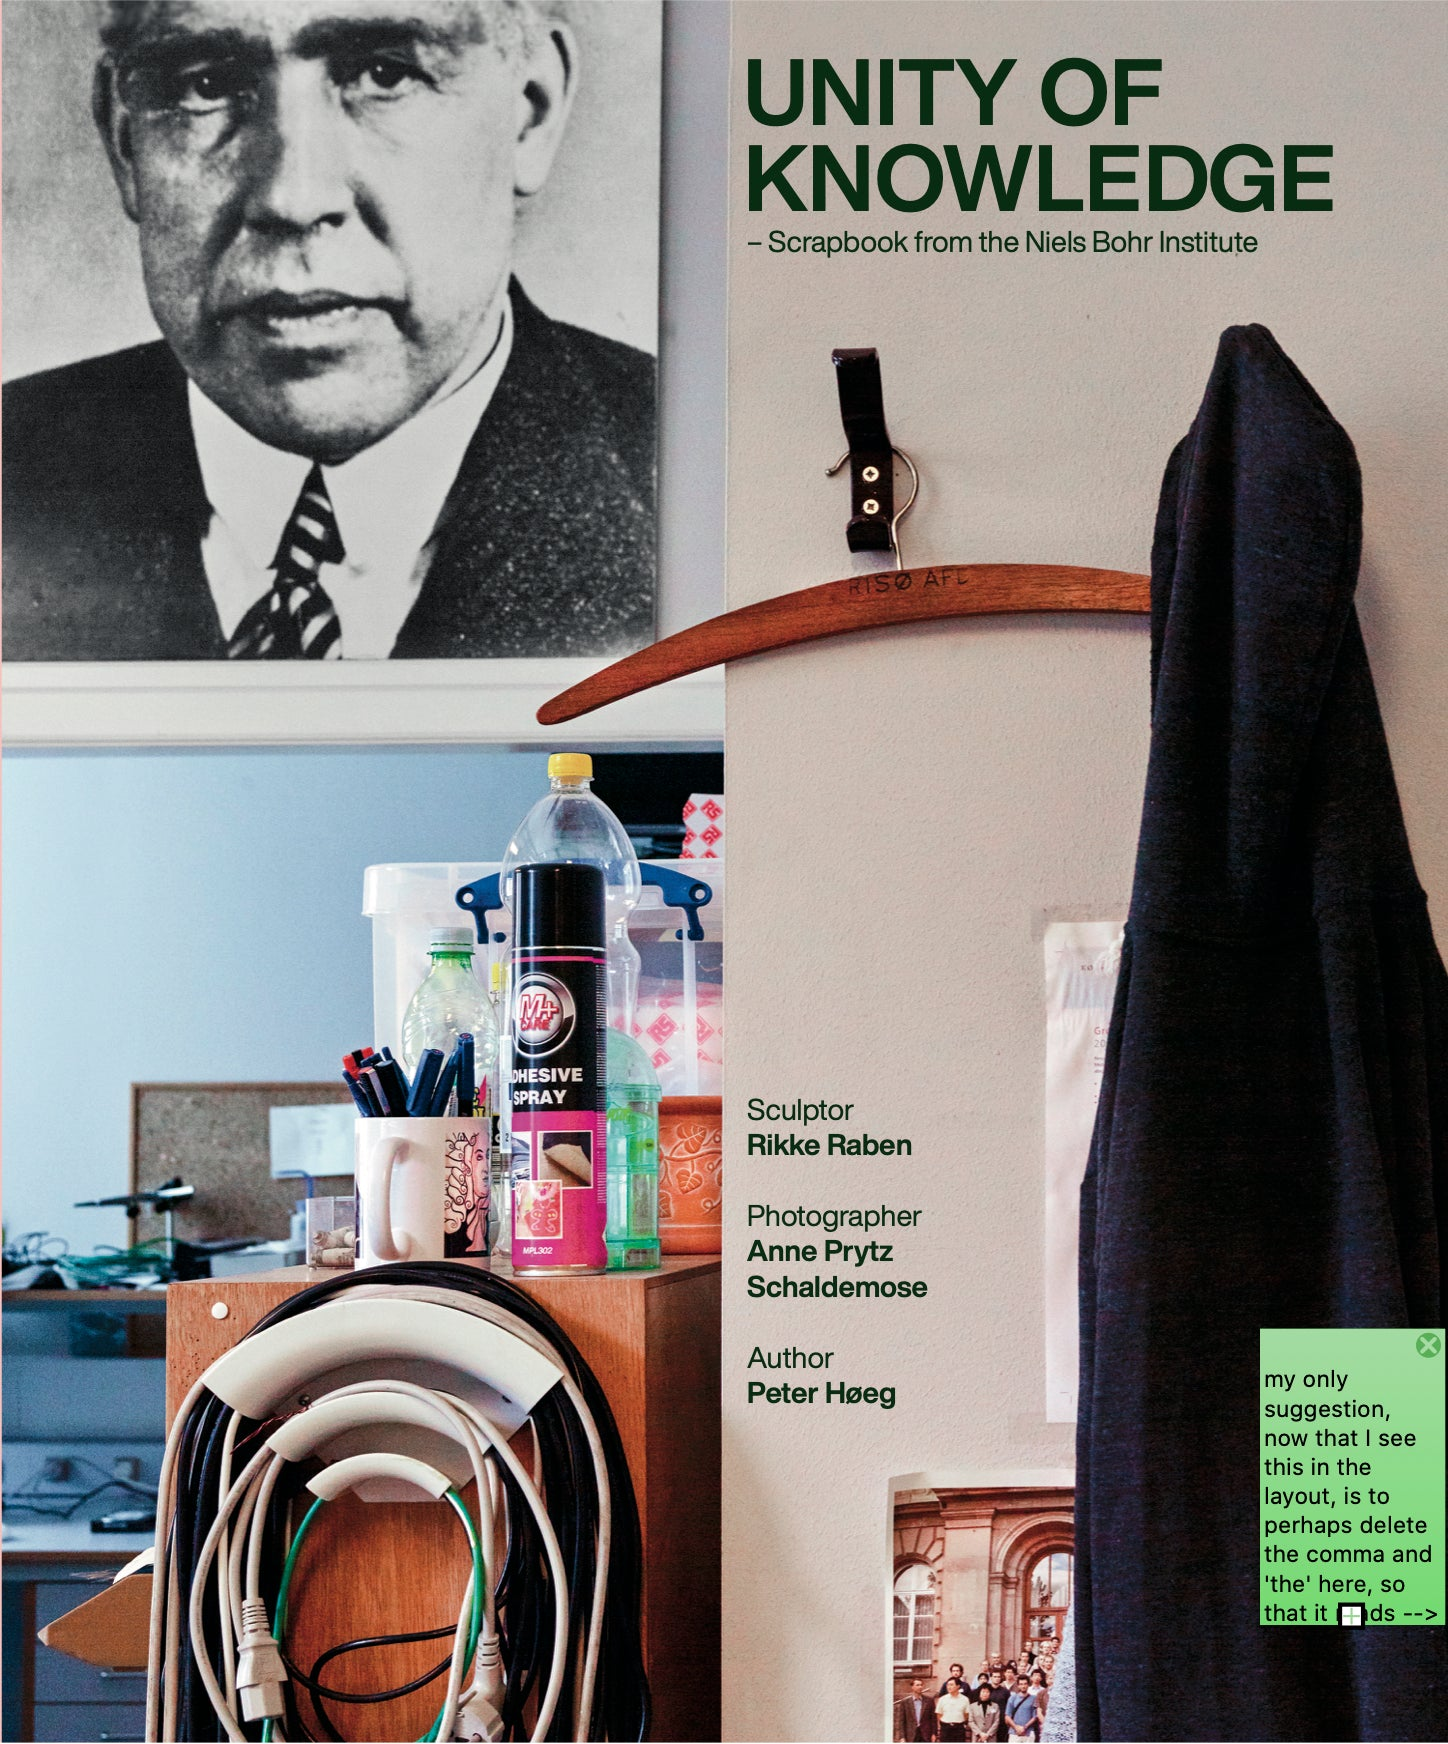 Unity of Knowledge – Scrapbook from the Niels Bohr Institute